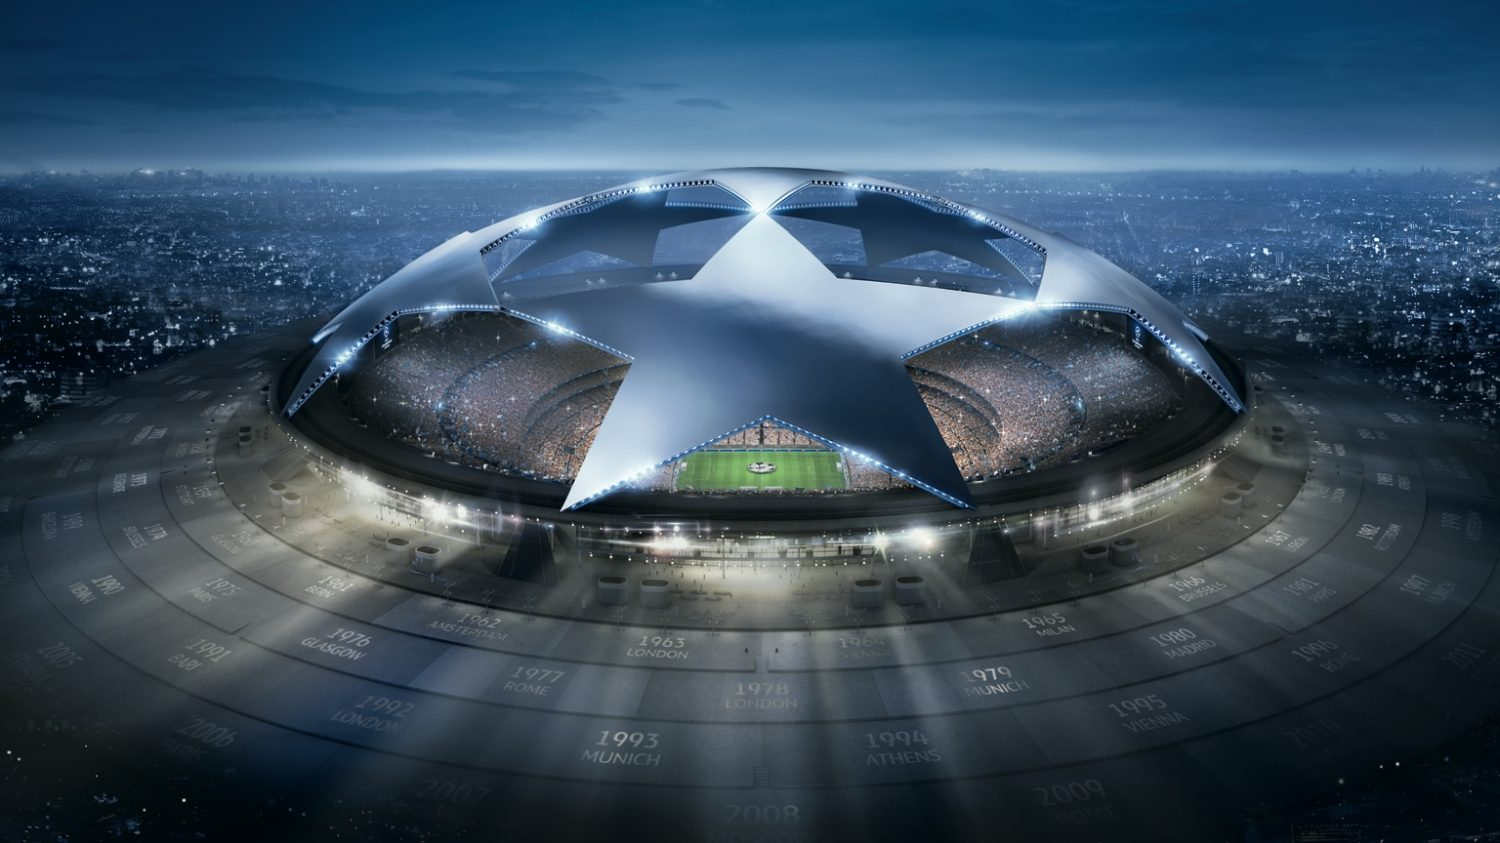 UEFA champions league stadium